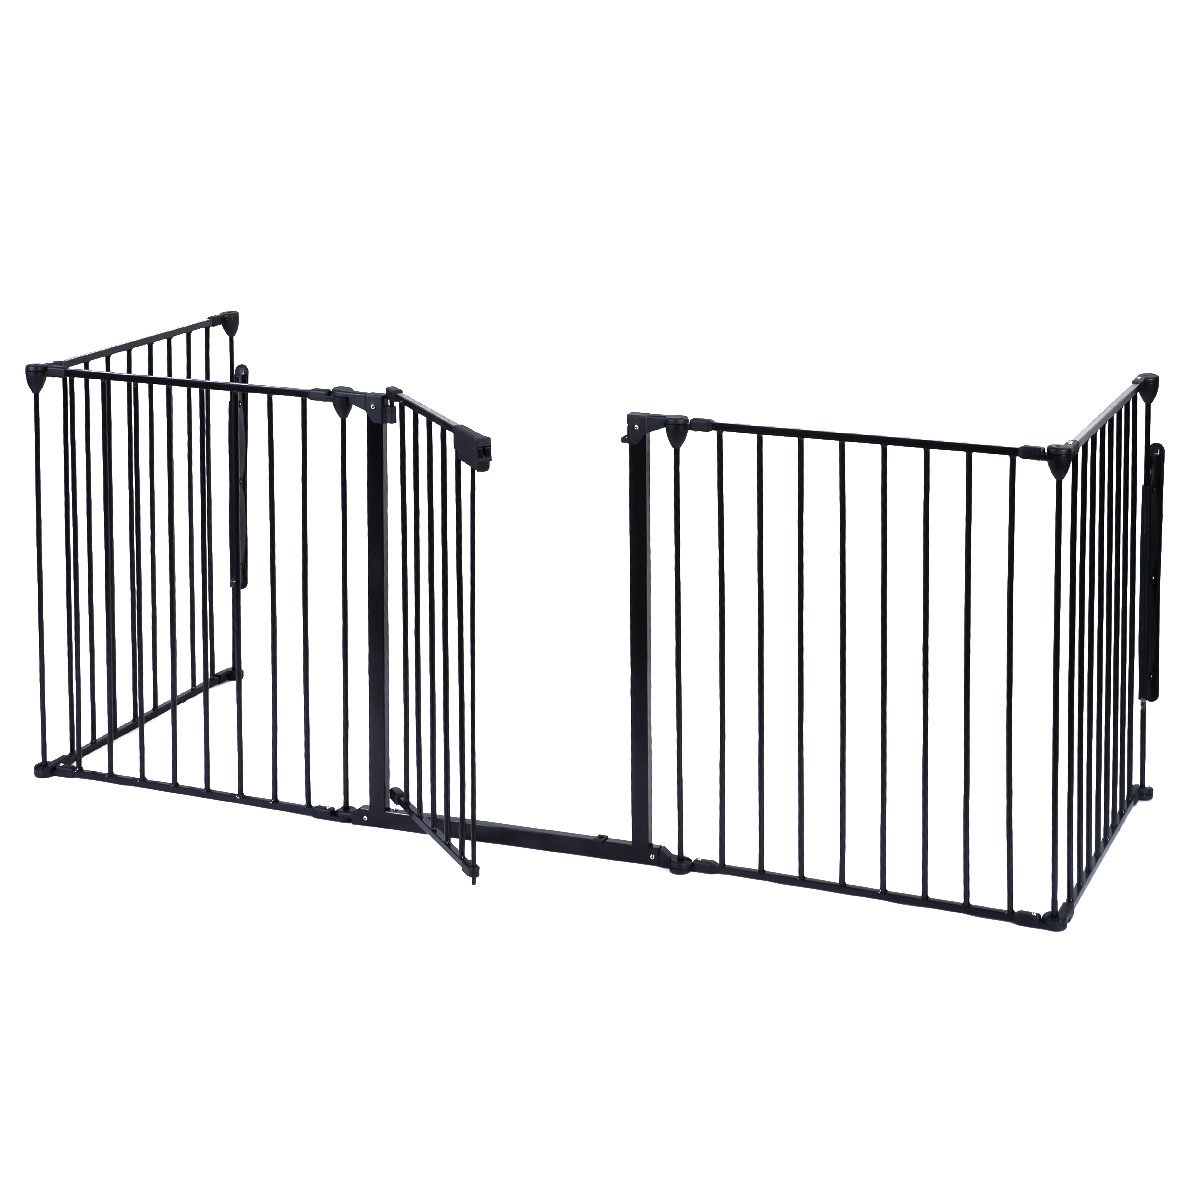 Costzon Baby Safety Gate, 120 Inch Length 5 Panel Adjustable Wide Fireplace Fence, BBQ Metal Fire Gate, Pet Isolation Fence with Walk-Through Door, Hardware Mount or Freestanding Hearth Gate by Costzon